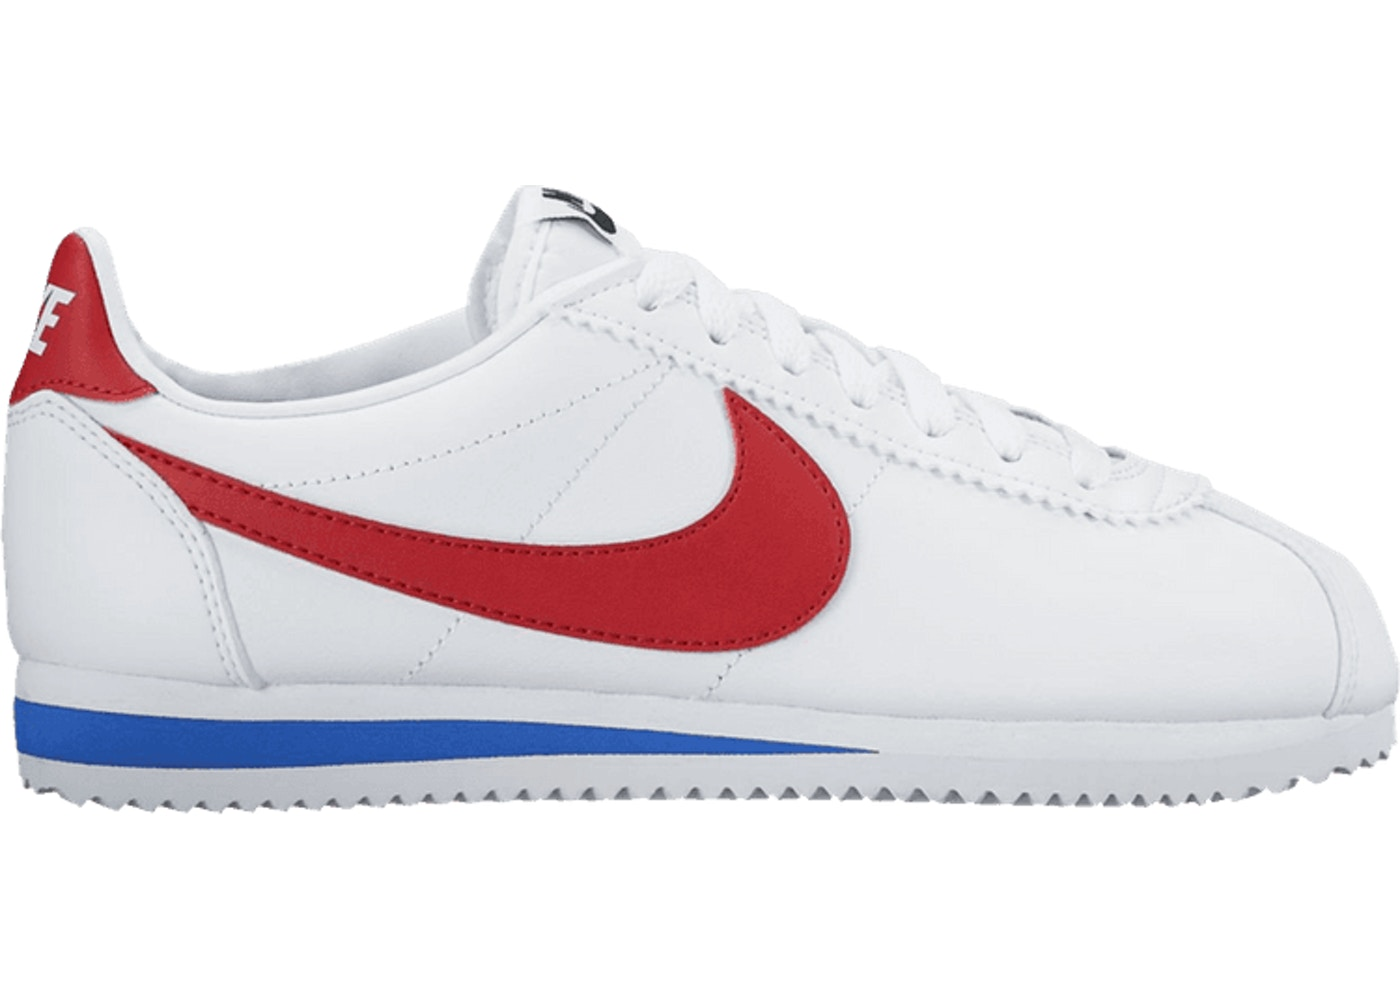 100% authentic 52b9b e45a4 Nike WMNS Classic Cortez Leather White Red Blue - 807471-103